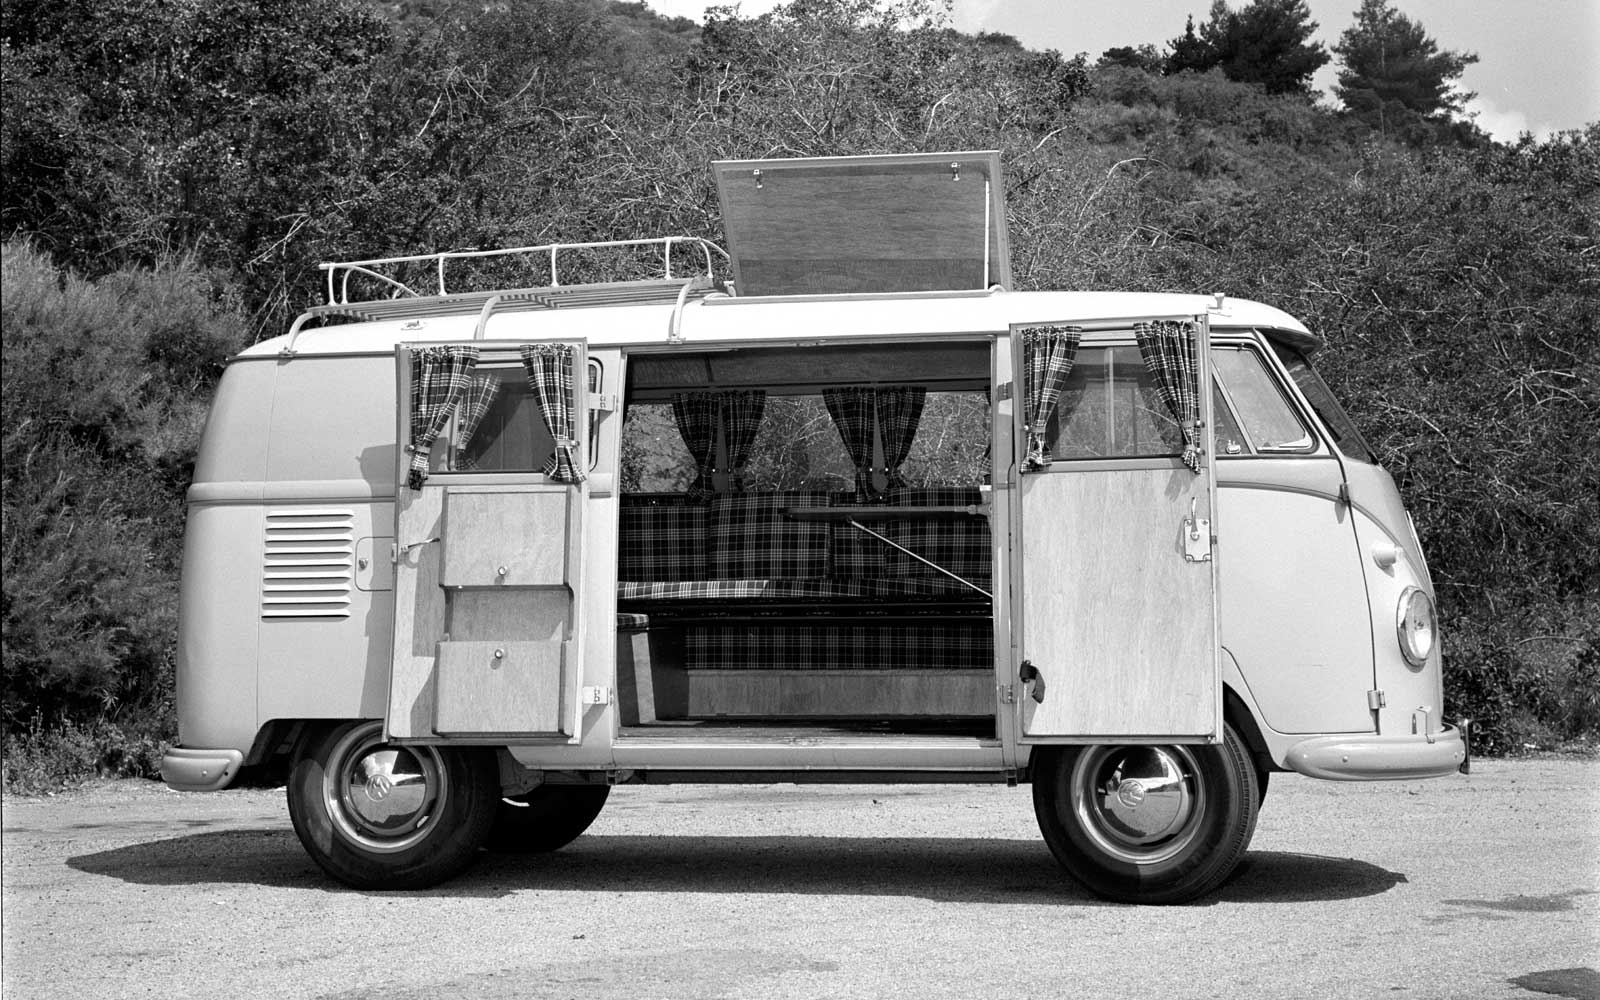 1956 VW Kamper Bus. Two-tone Volkwagen Microbus camper in the mountains north of Los Angeles.